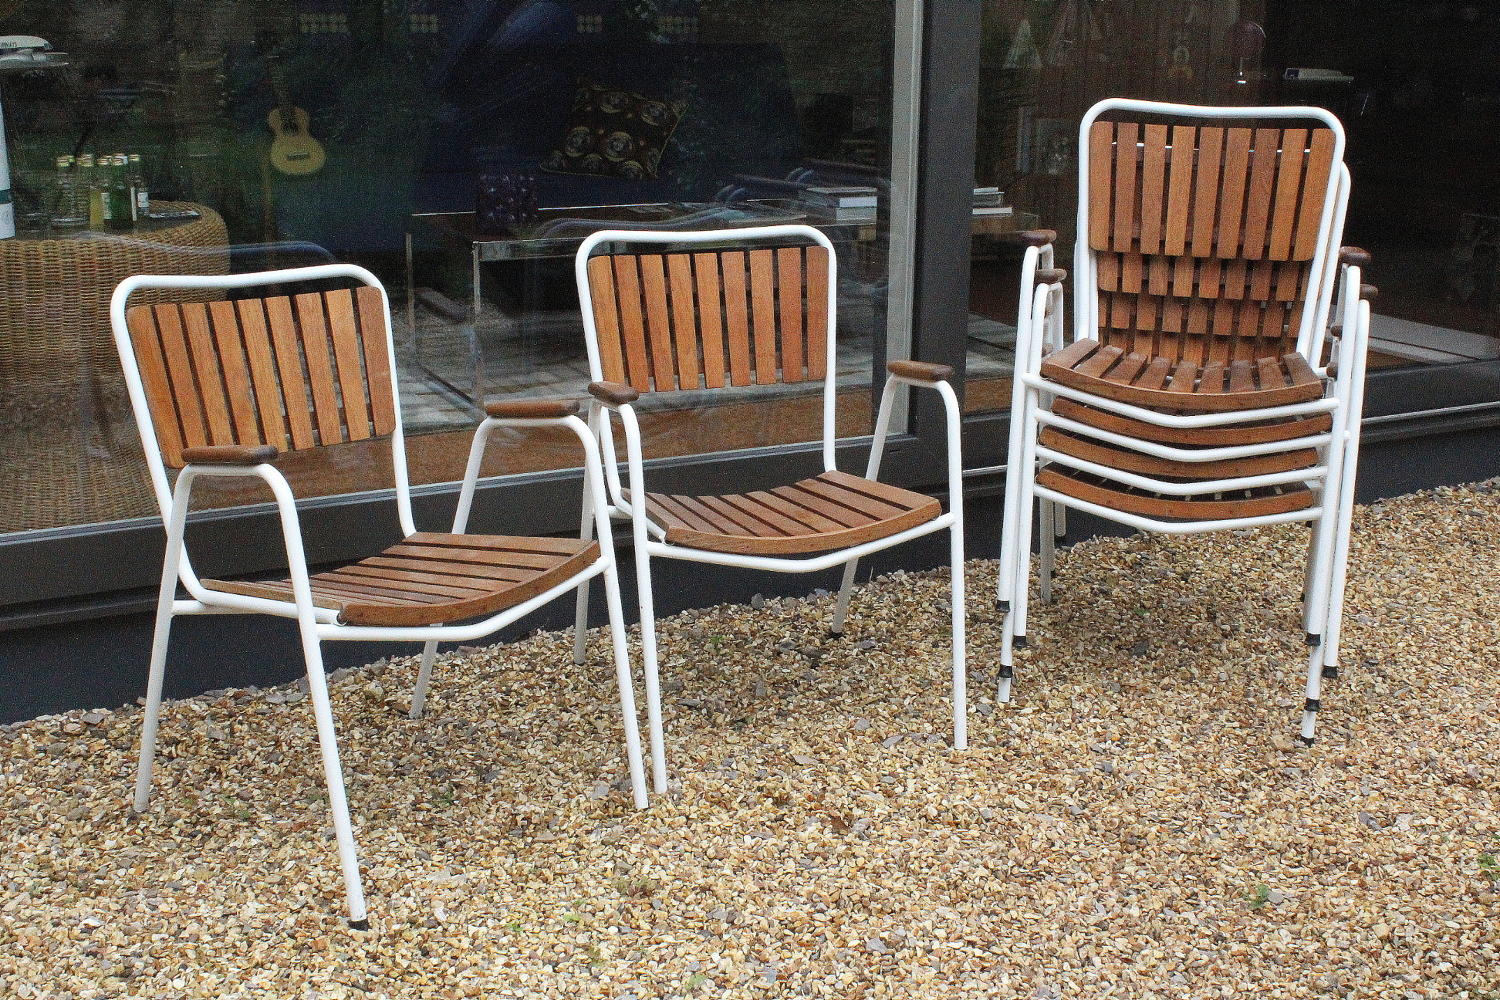 Danish BKS Denmark Teak Stacking Garden Chairs